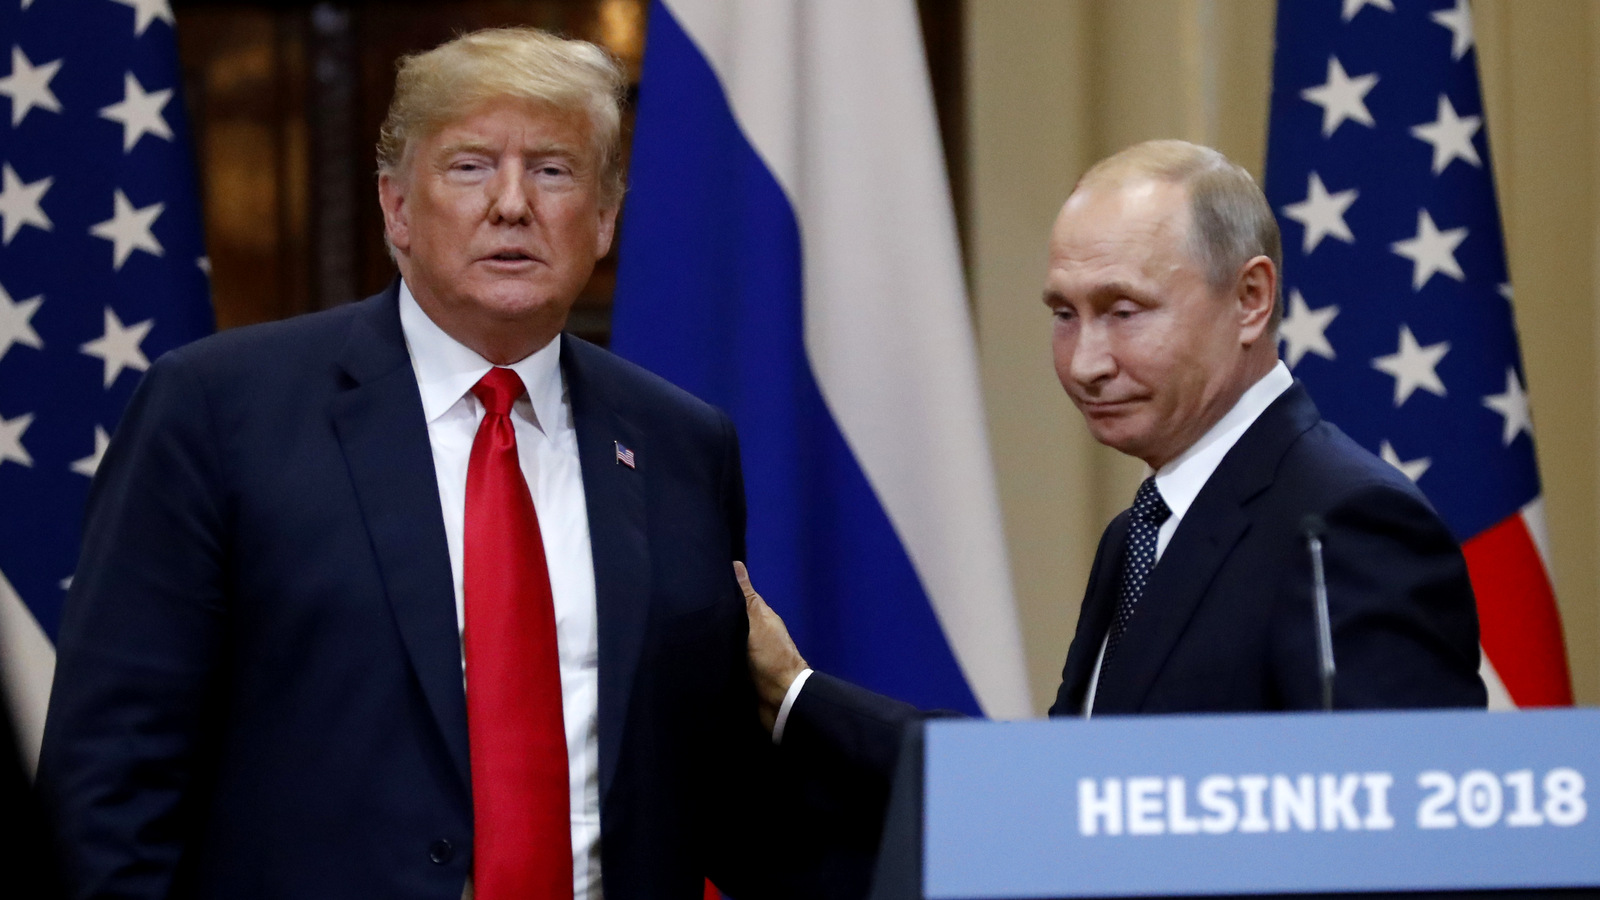 Trump's Helsinki Faceplant Is a Grim Reflection of Washington's Uncompromising Anti-Russia Crusade